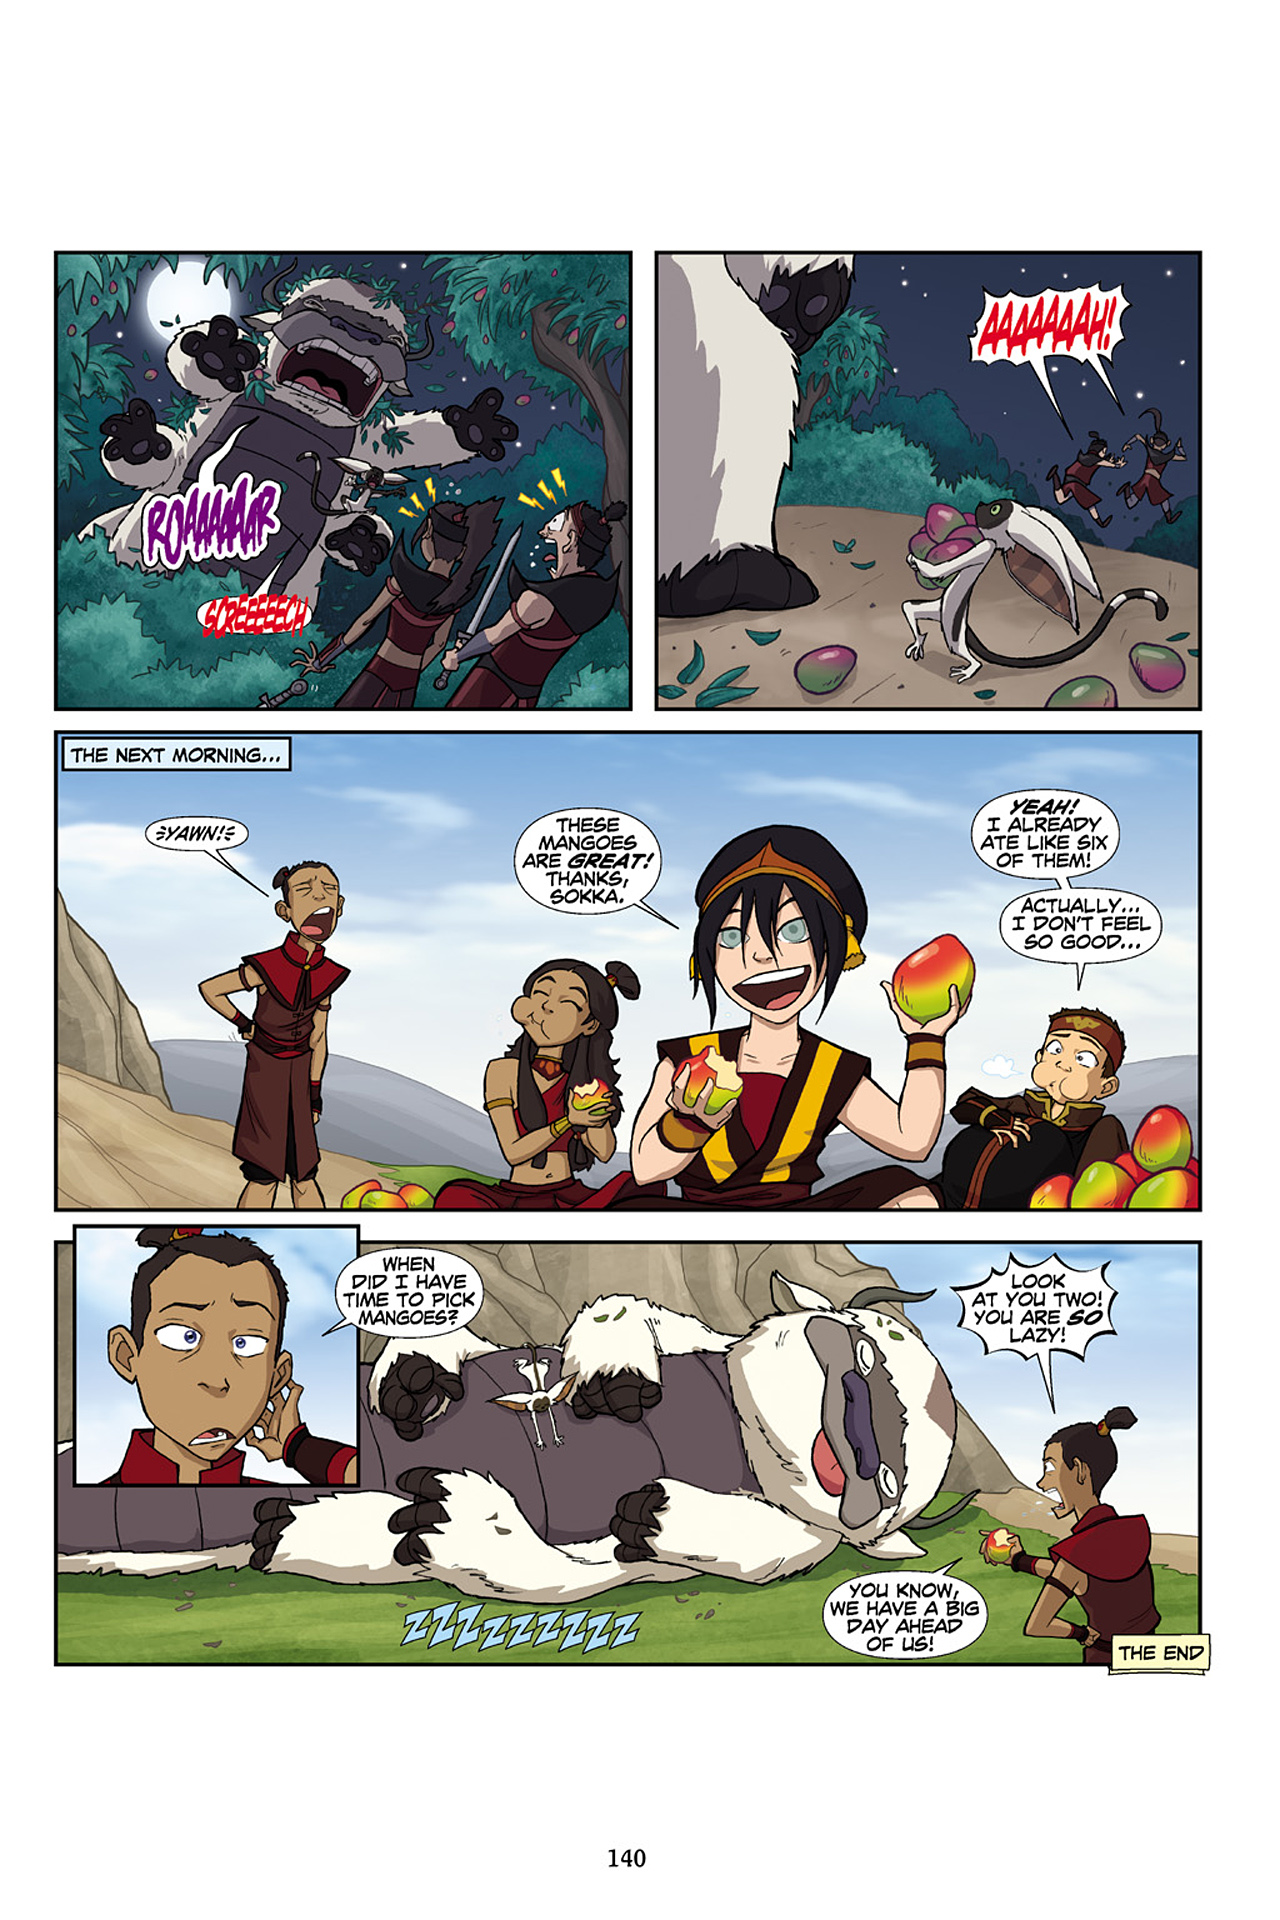 Nickelodeon Avatar: The Last Airbender - The Lost Adventures chap full pic 141